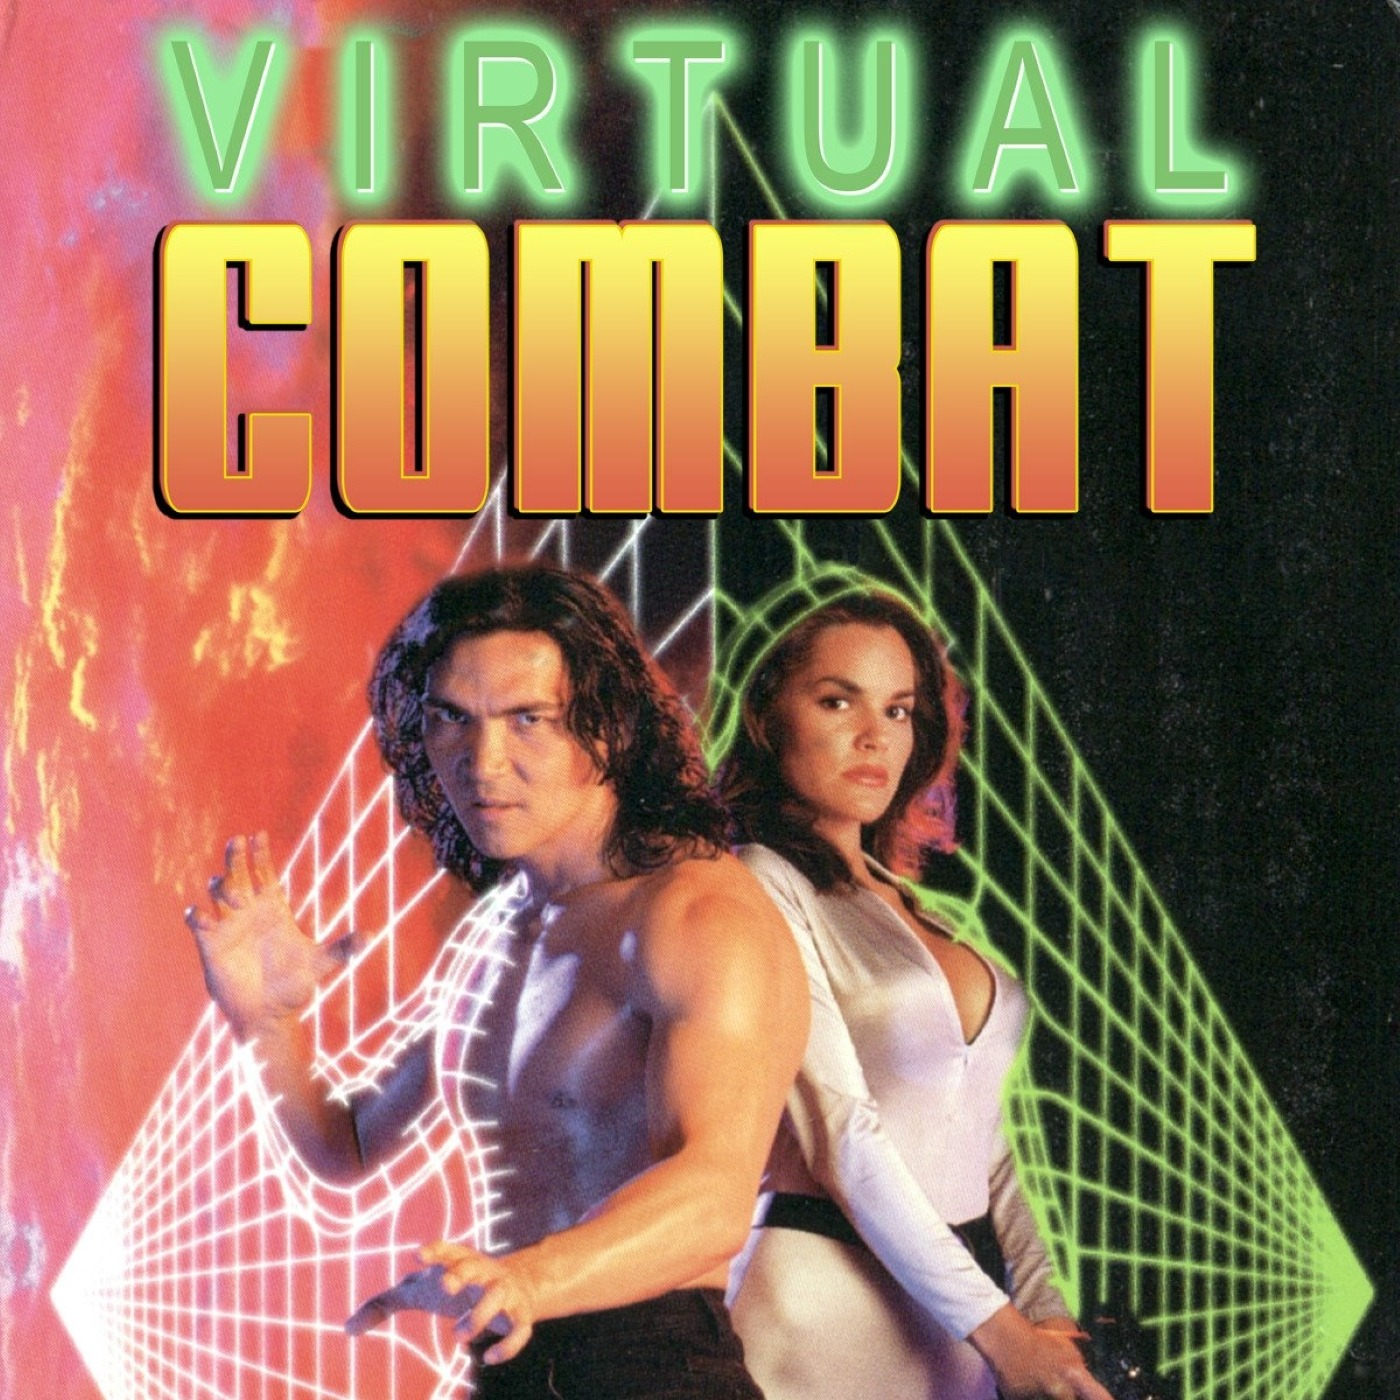 GVN Presents: They Called This a Movie - Virtual Combat (1995)